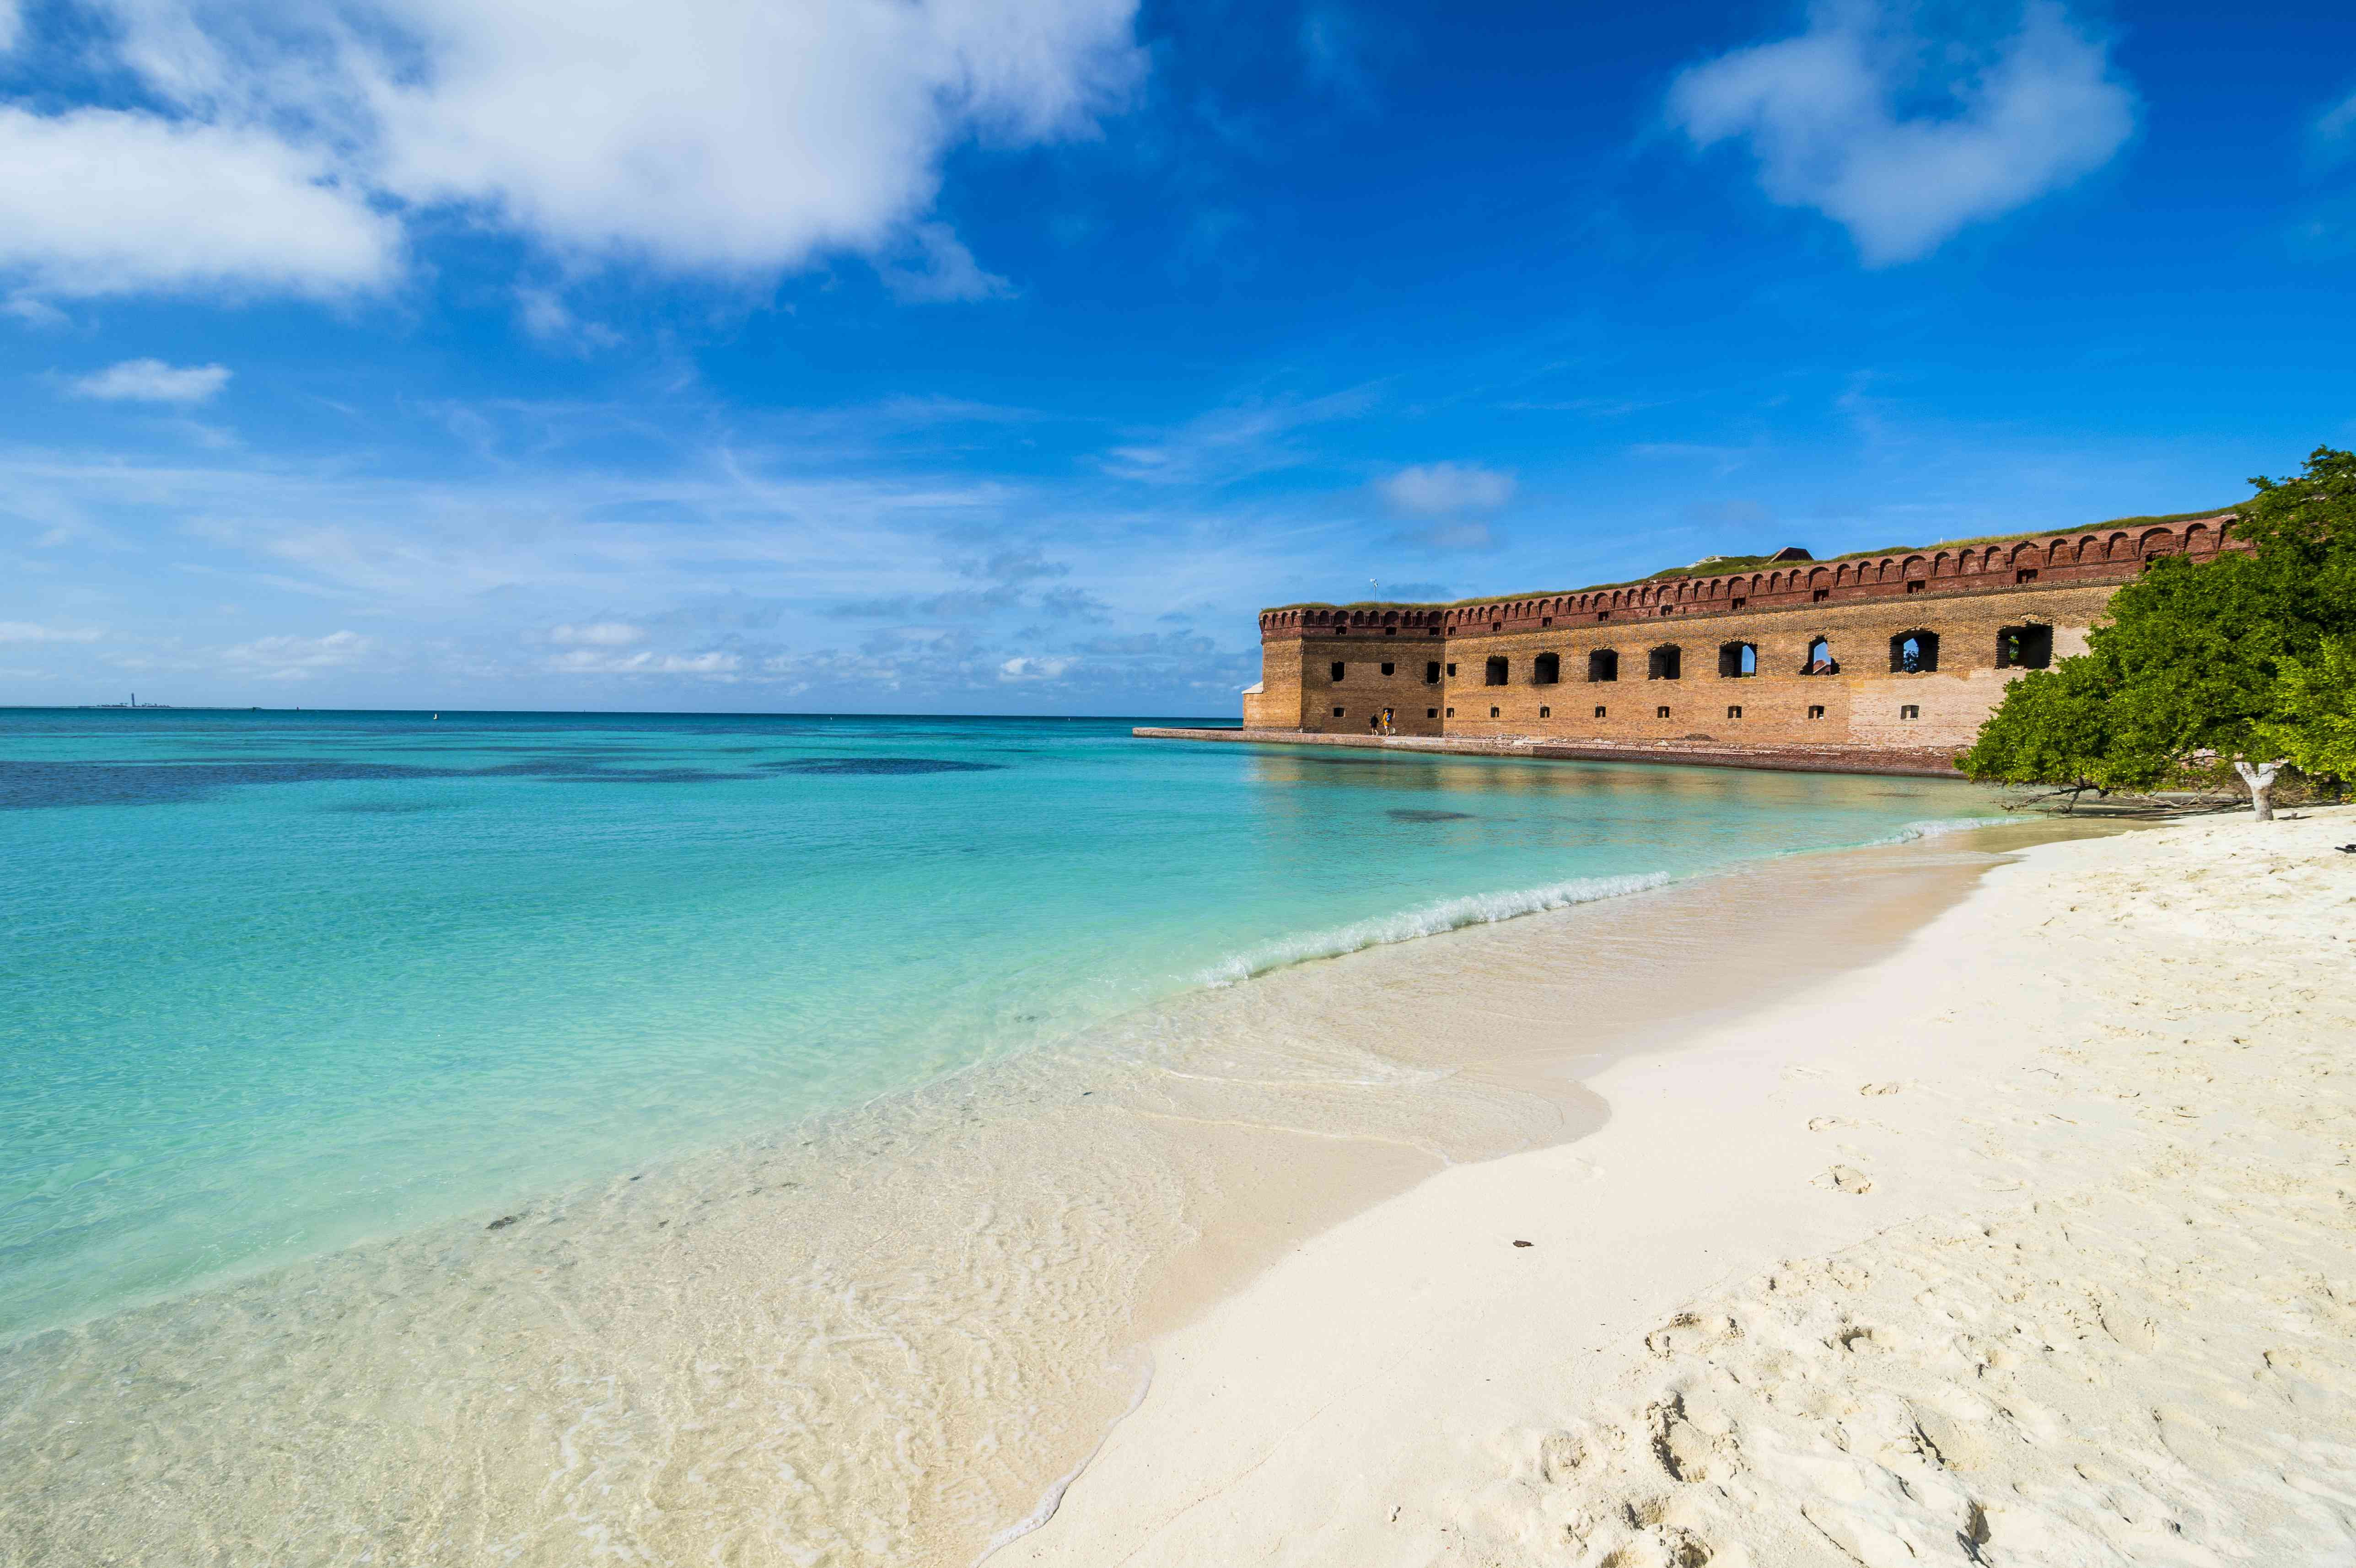 USA, Florida, Florida Keys, Dry Tortugas National Park, White sand beach and turquoise waters before Fort Jefferson